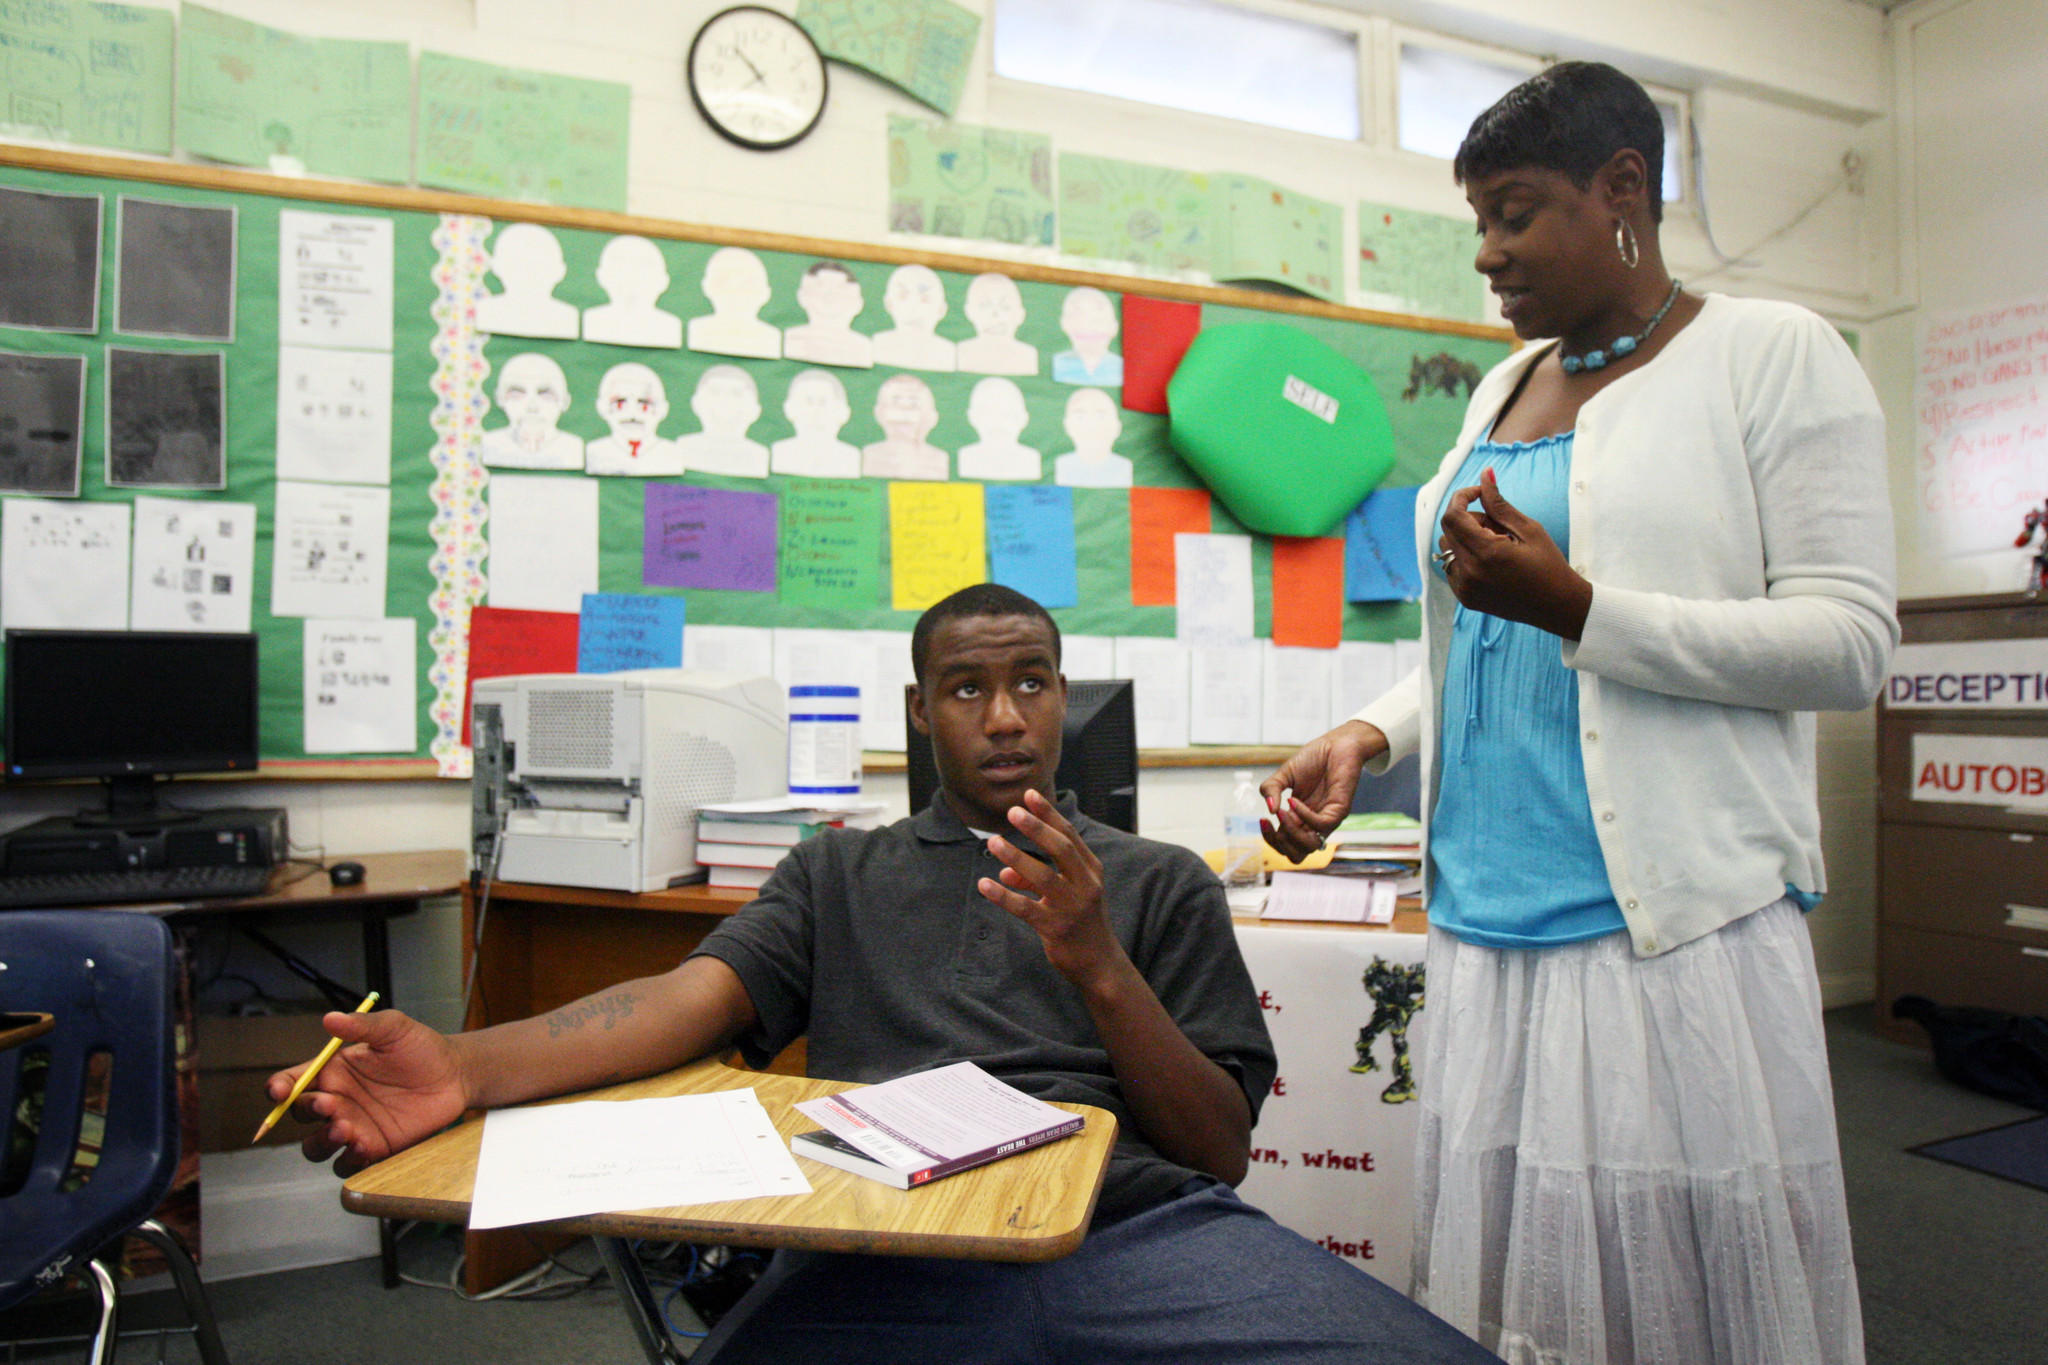 Marquis, 16, left, and English teacher Monica Jackson count the syllables in his haiku poem at Camp Afflerblaugh in La Verne. A new study found that California and other states were failing to adequately educate juvenile inmates but L.A. County court schools have made progress following a 2010 lawsuit.